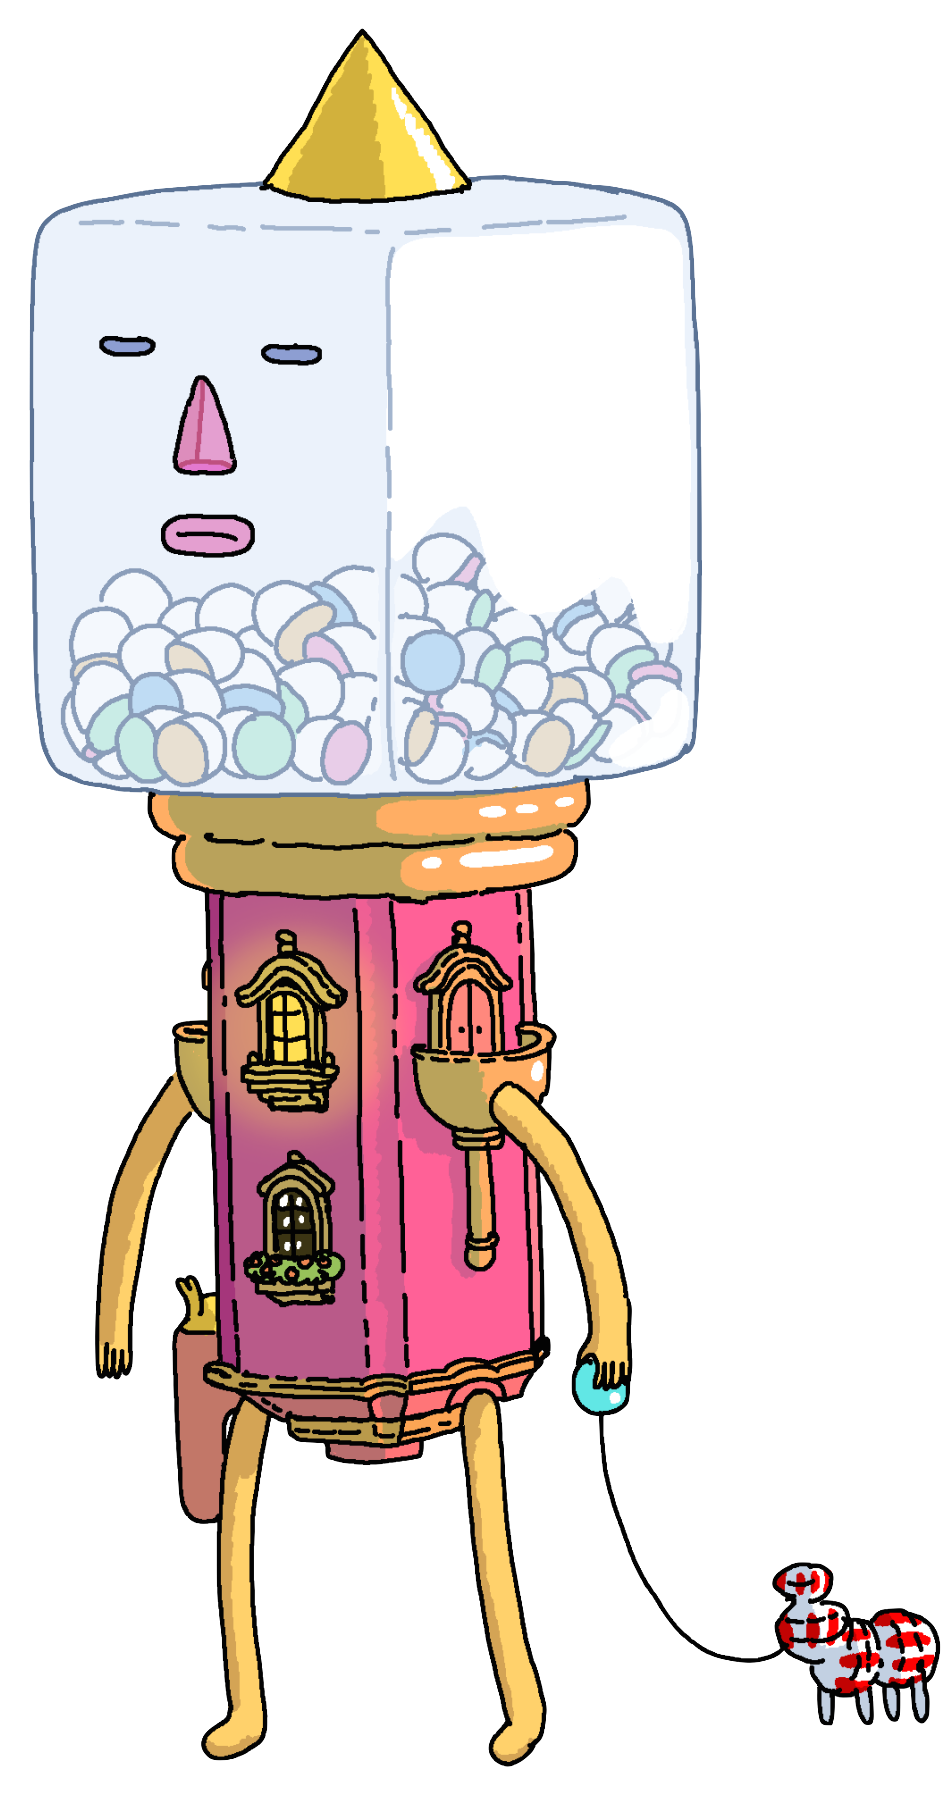 clipart download Gumball machine clipart vintage candy. Prize ball guardian adventure